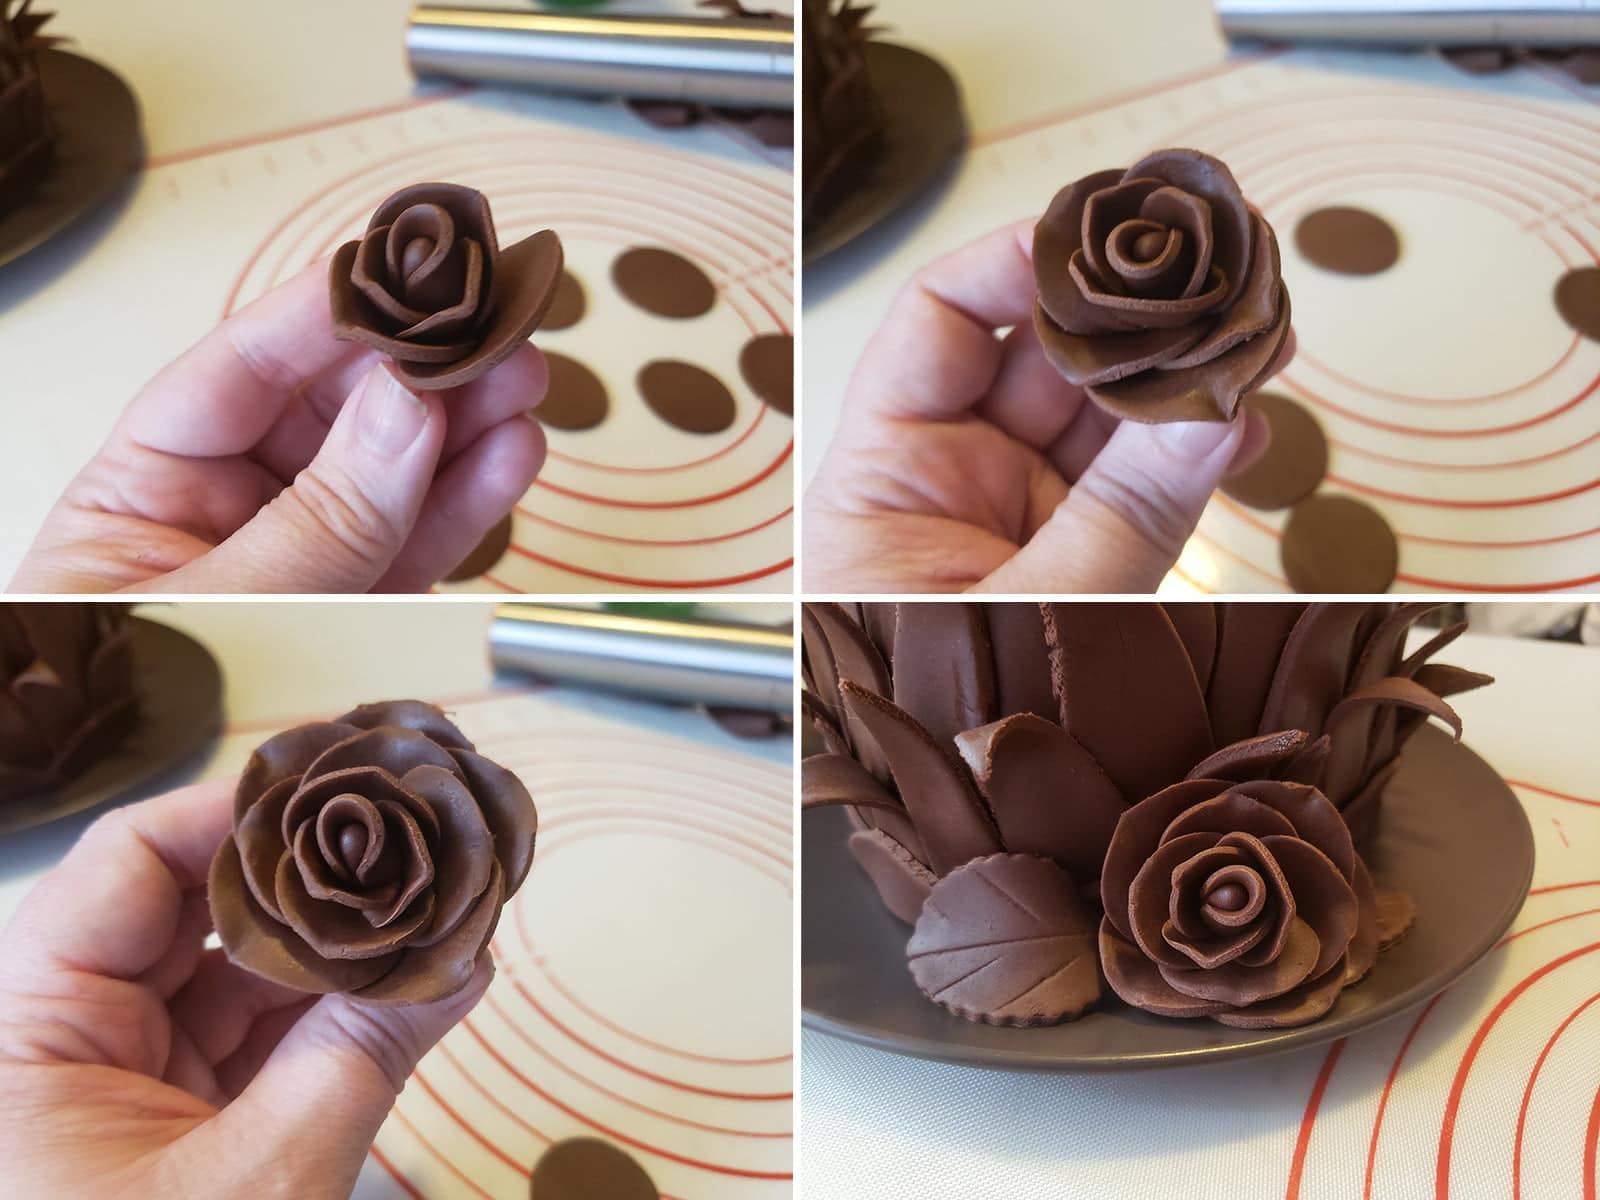 A 4 part compilation image demonstrating the final steps and placement of a chocolate fondant rose.